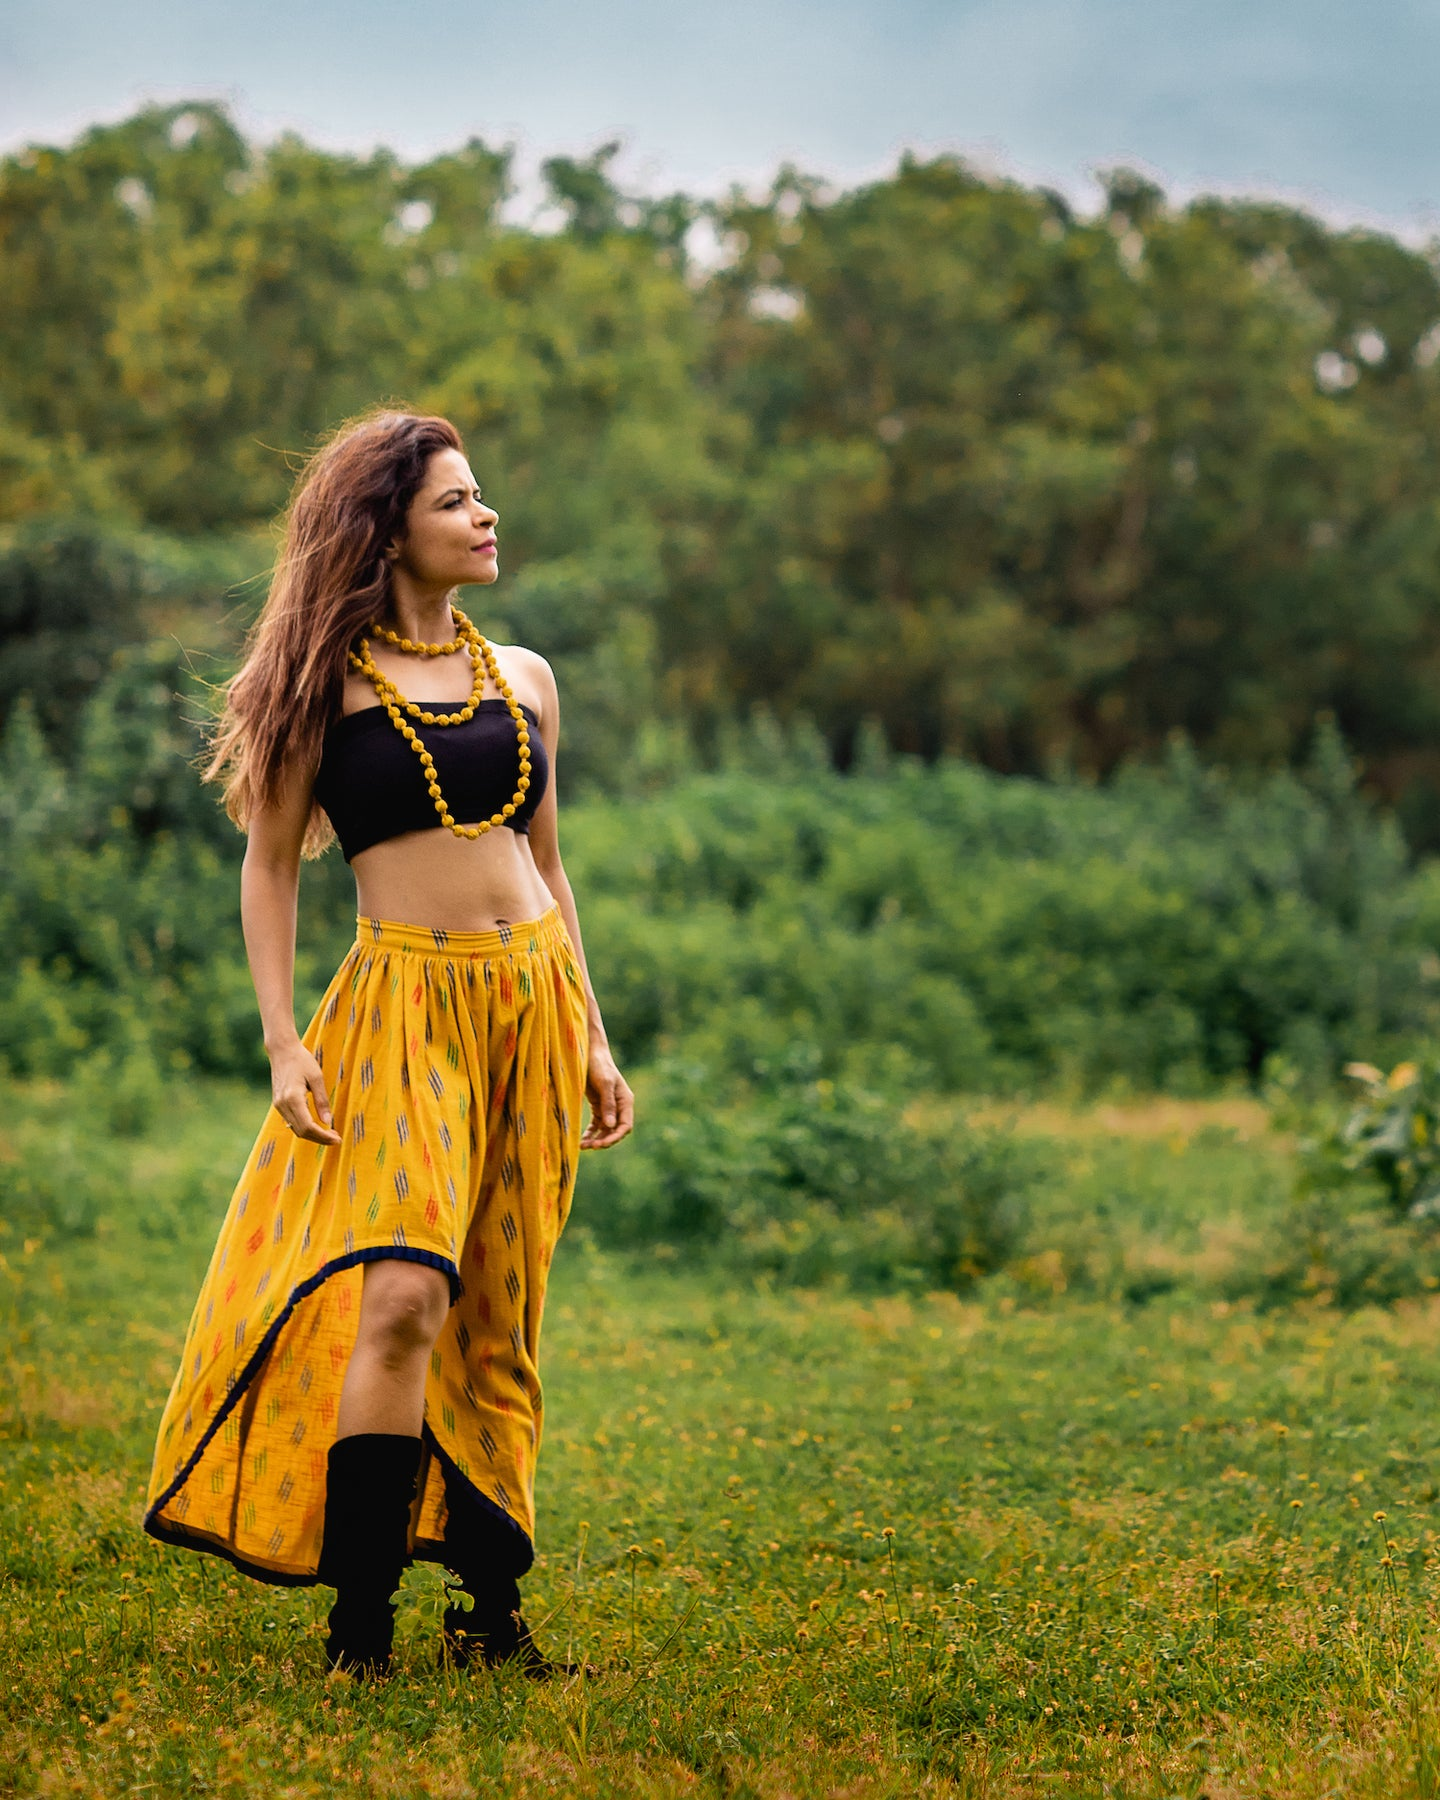 The Yellow Pure Cotton Boho Skirt by threada